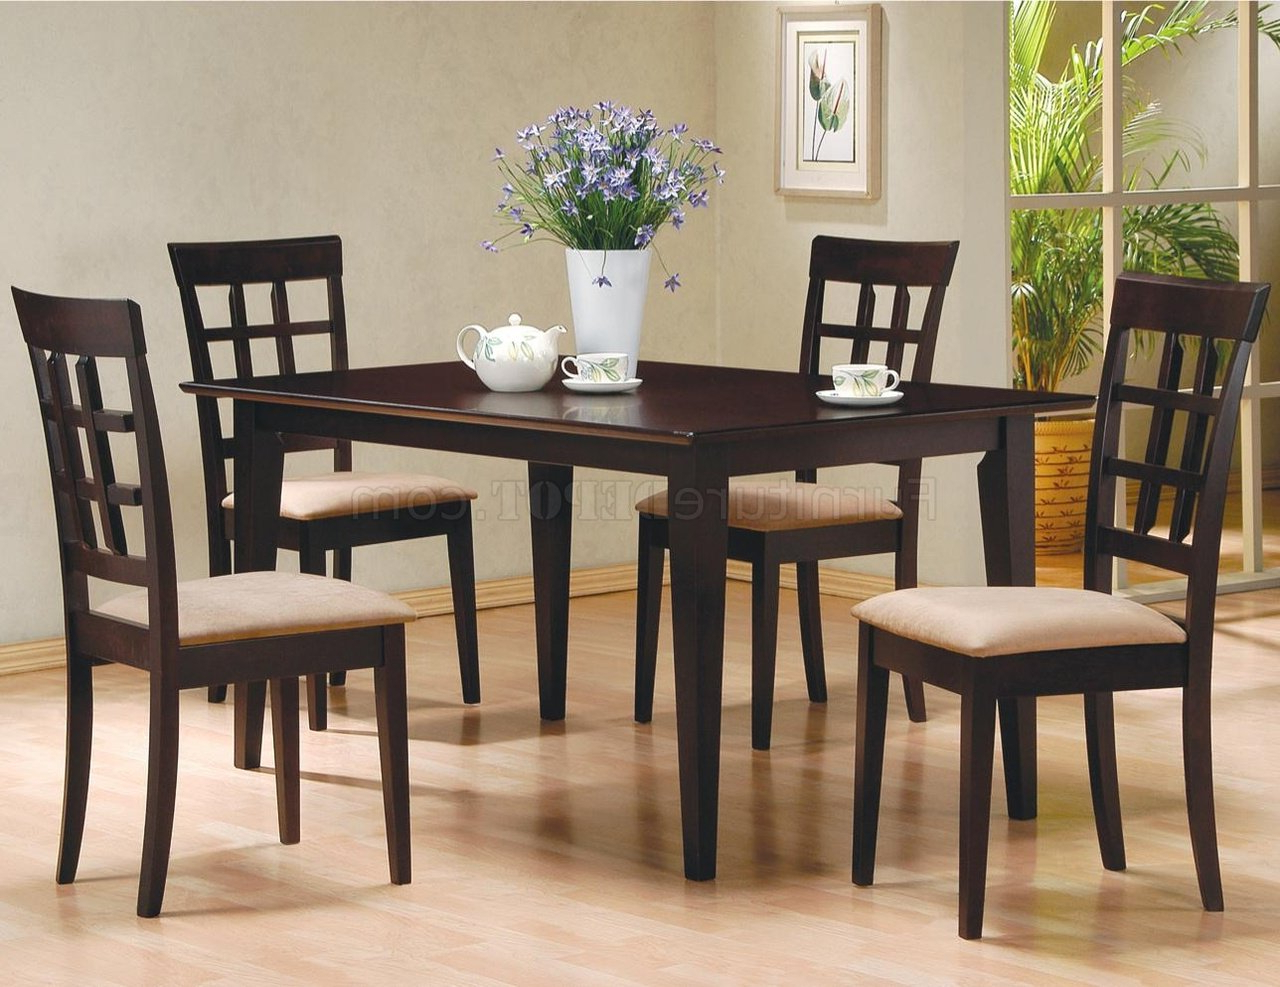 Most Popular Medium Elegant Dining Tables Throughout Cappuccino Finish Elegant Dinette With Soft Microfiber Seats (View 20 of 30)